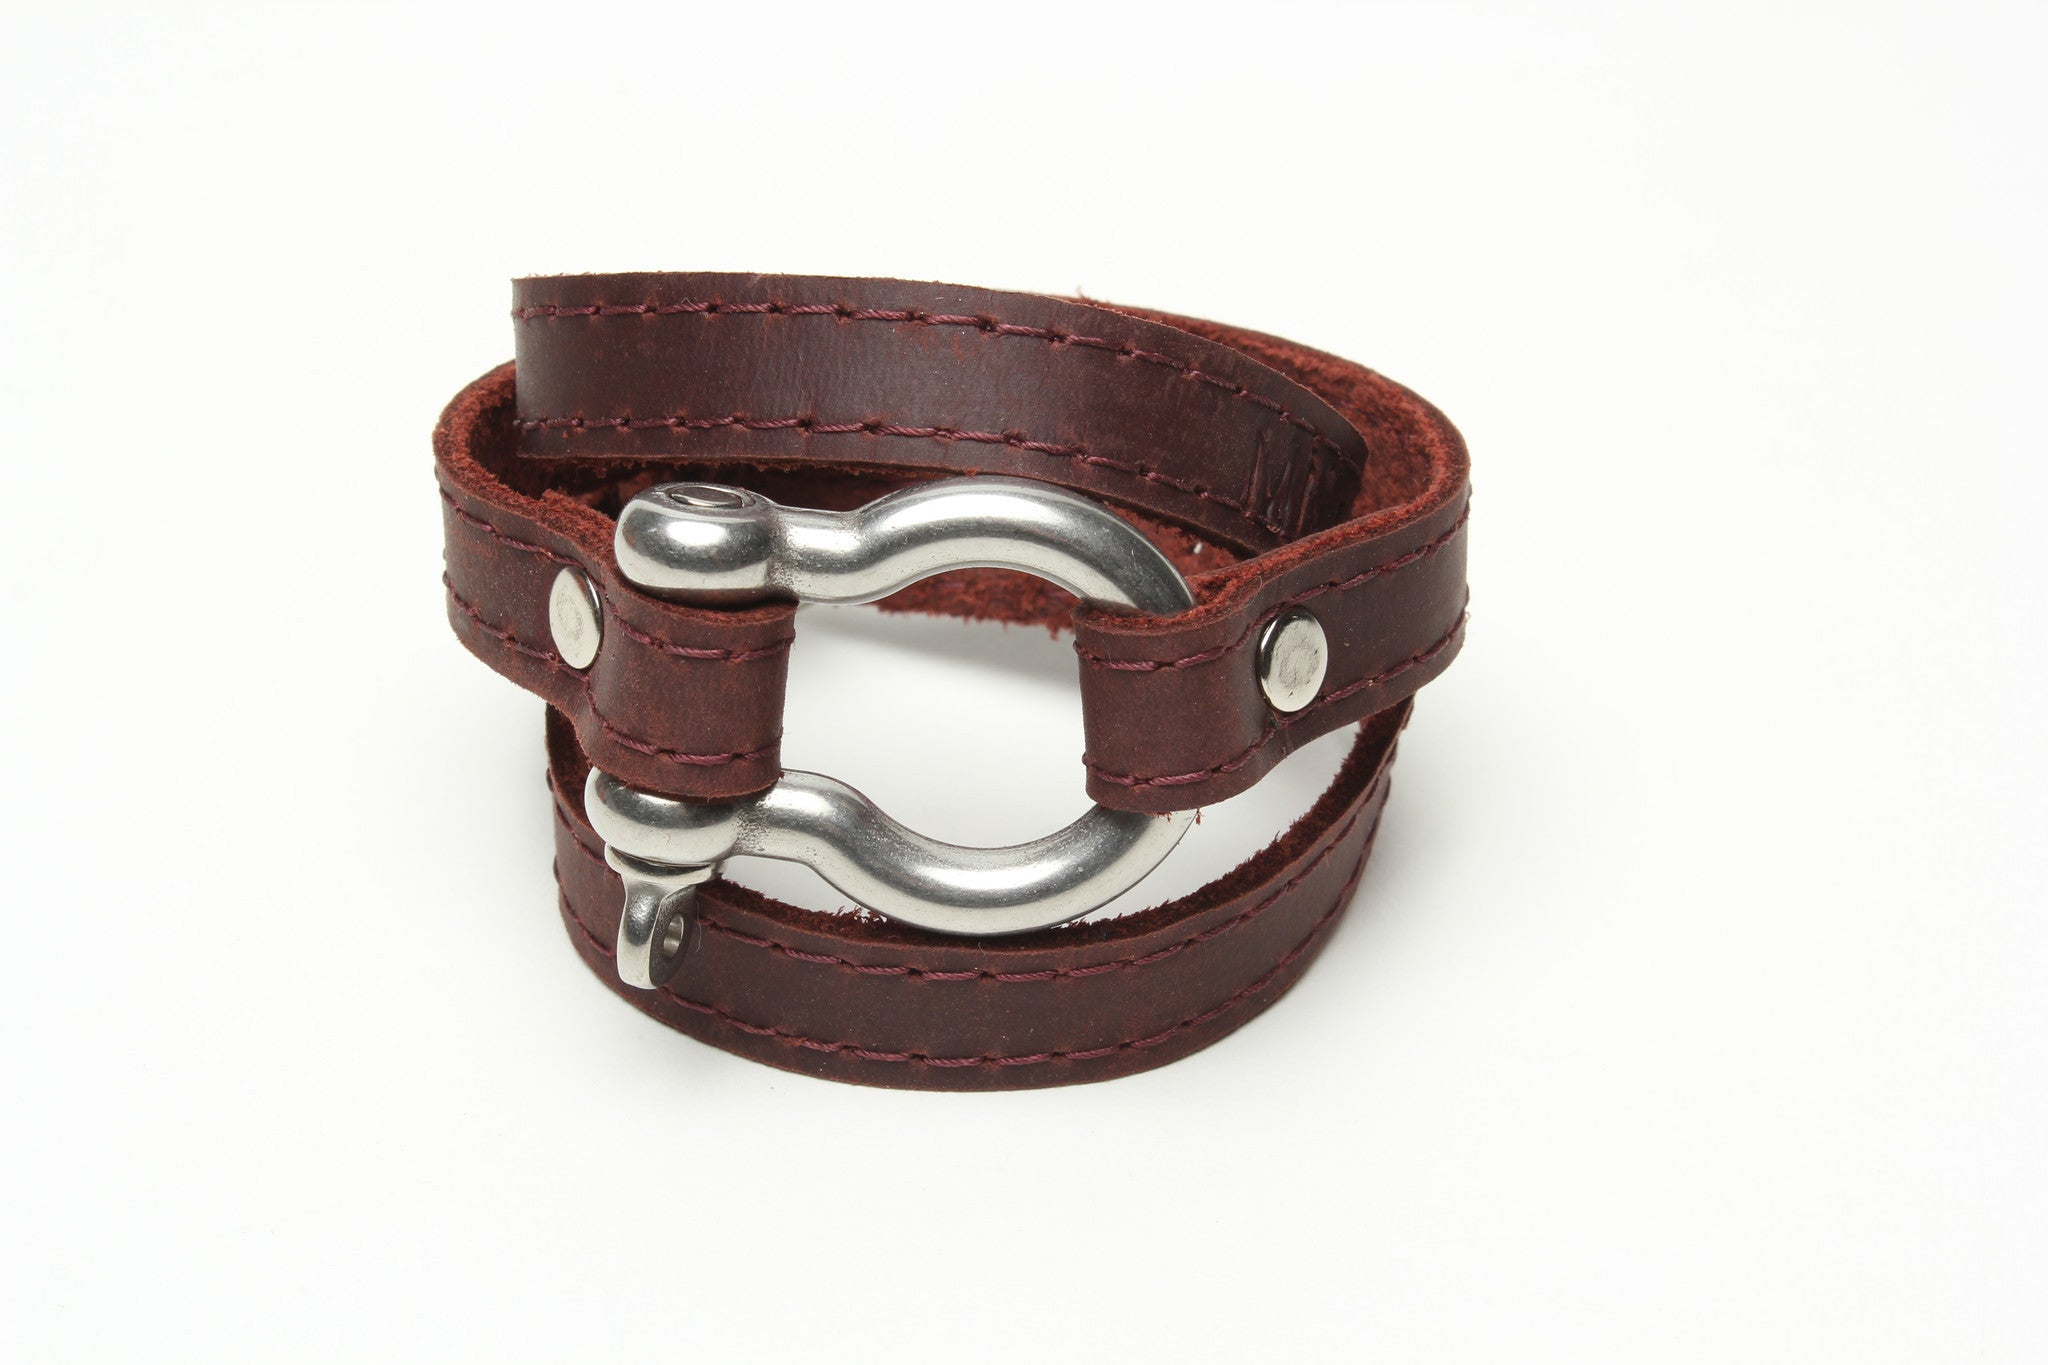 Signature Shackle Wraparound Bracelet by nyet jewelry.